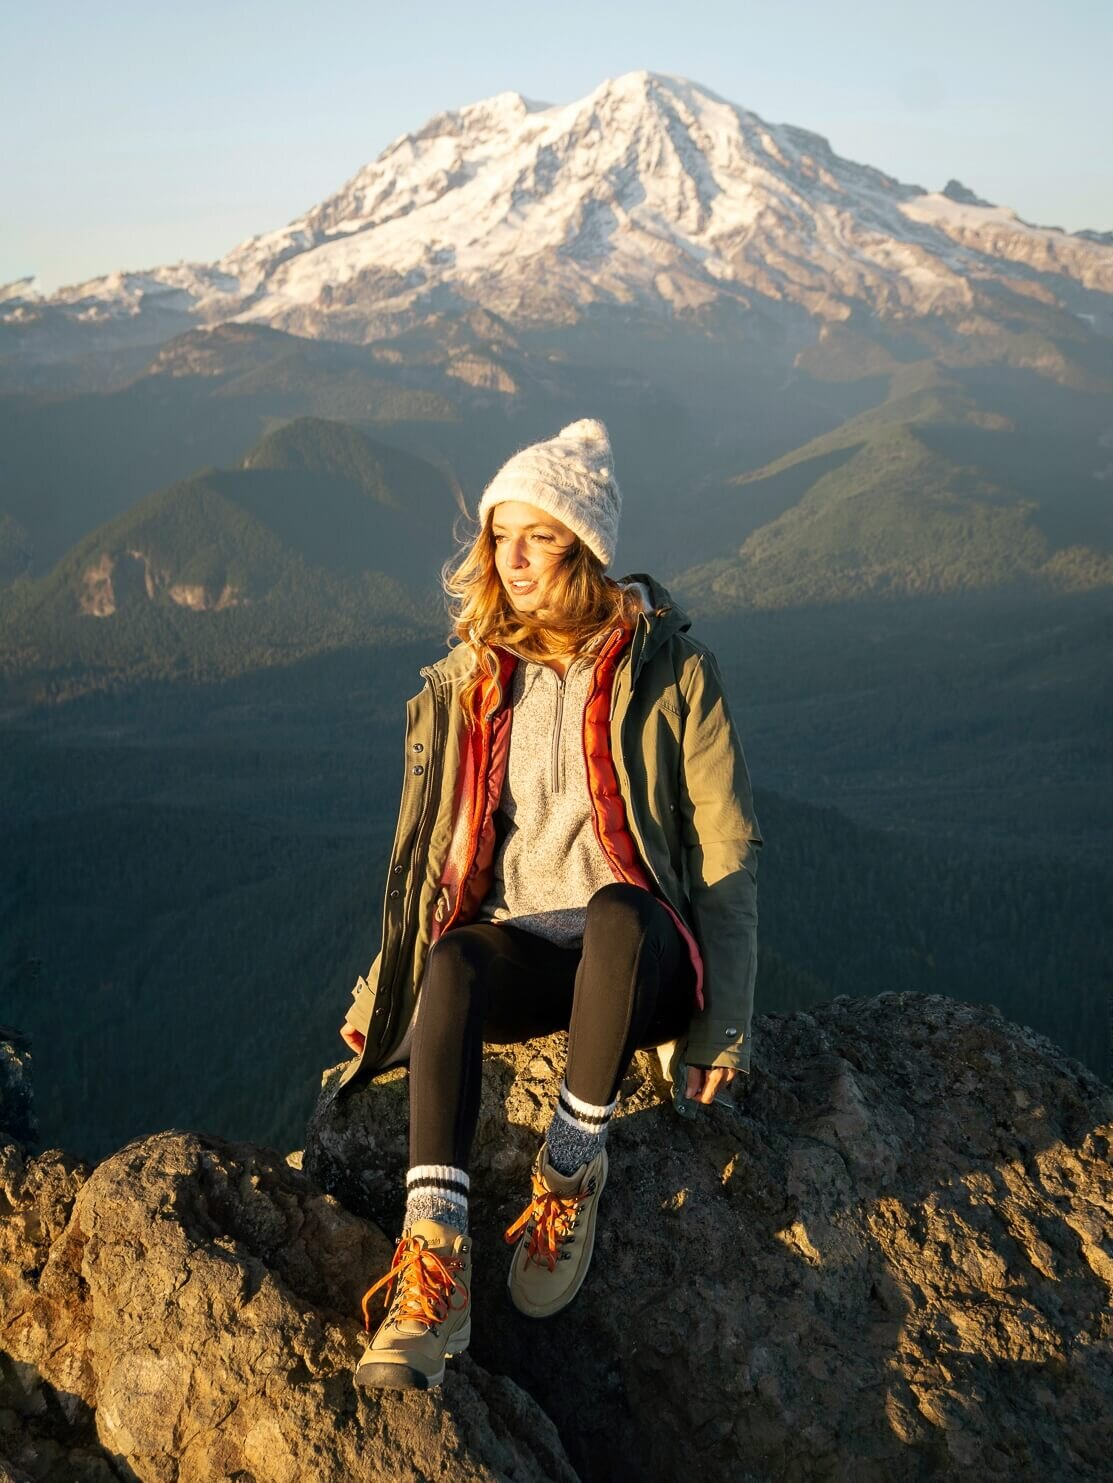 High Rock Lookout in Washington State. Tops : Patagonia  Fleece Jacket , Patagonia Down  Sweater Vest  ,  Valcom  Parka  ; Bottoms:  The North Face  Winter Warm Tight  ; Shoes:  Danner  Hiker Boot